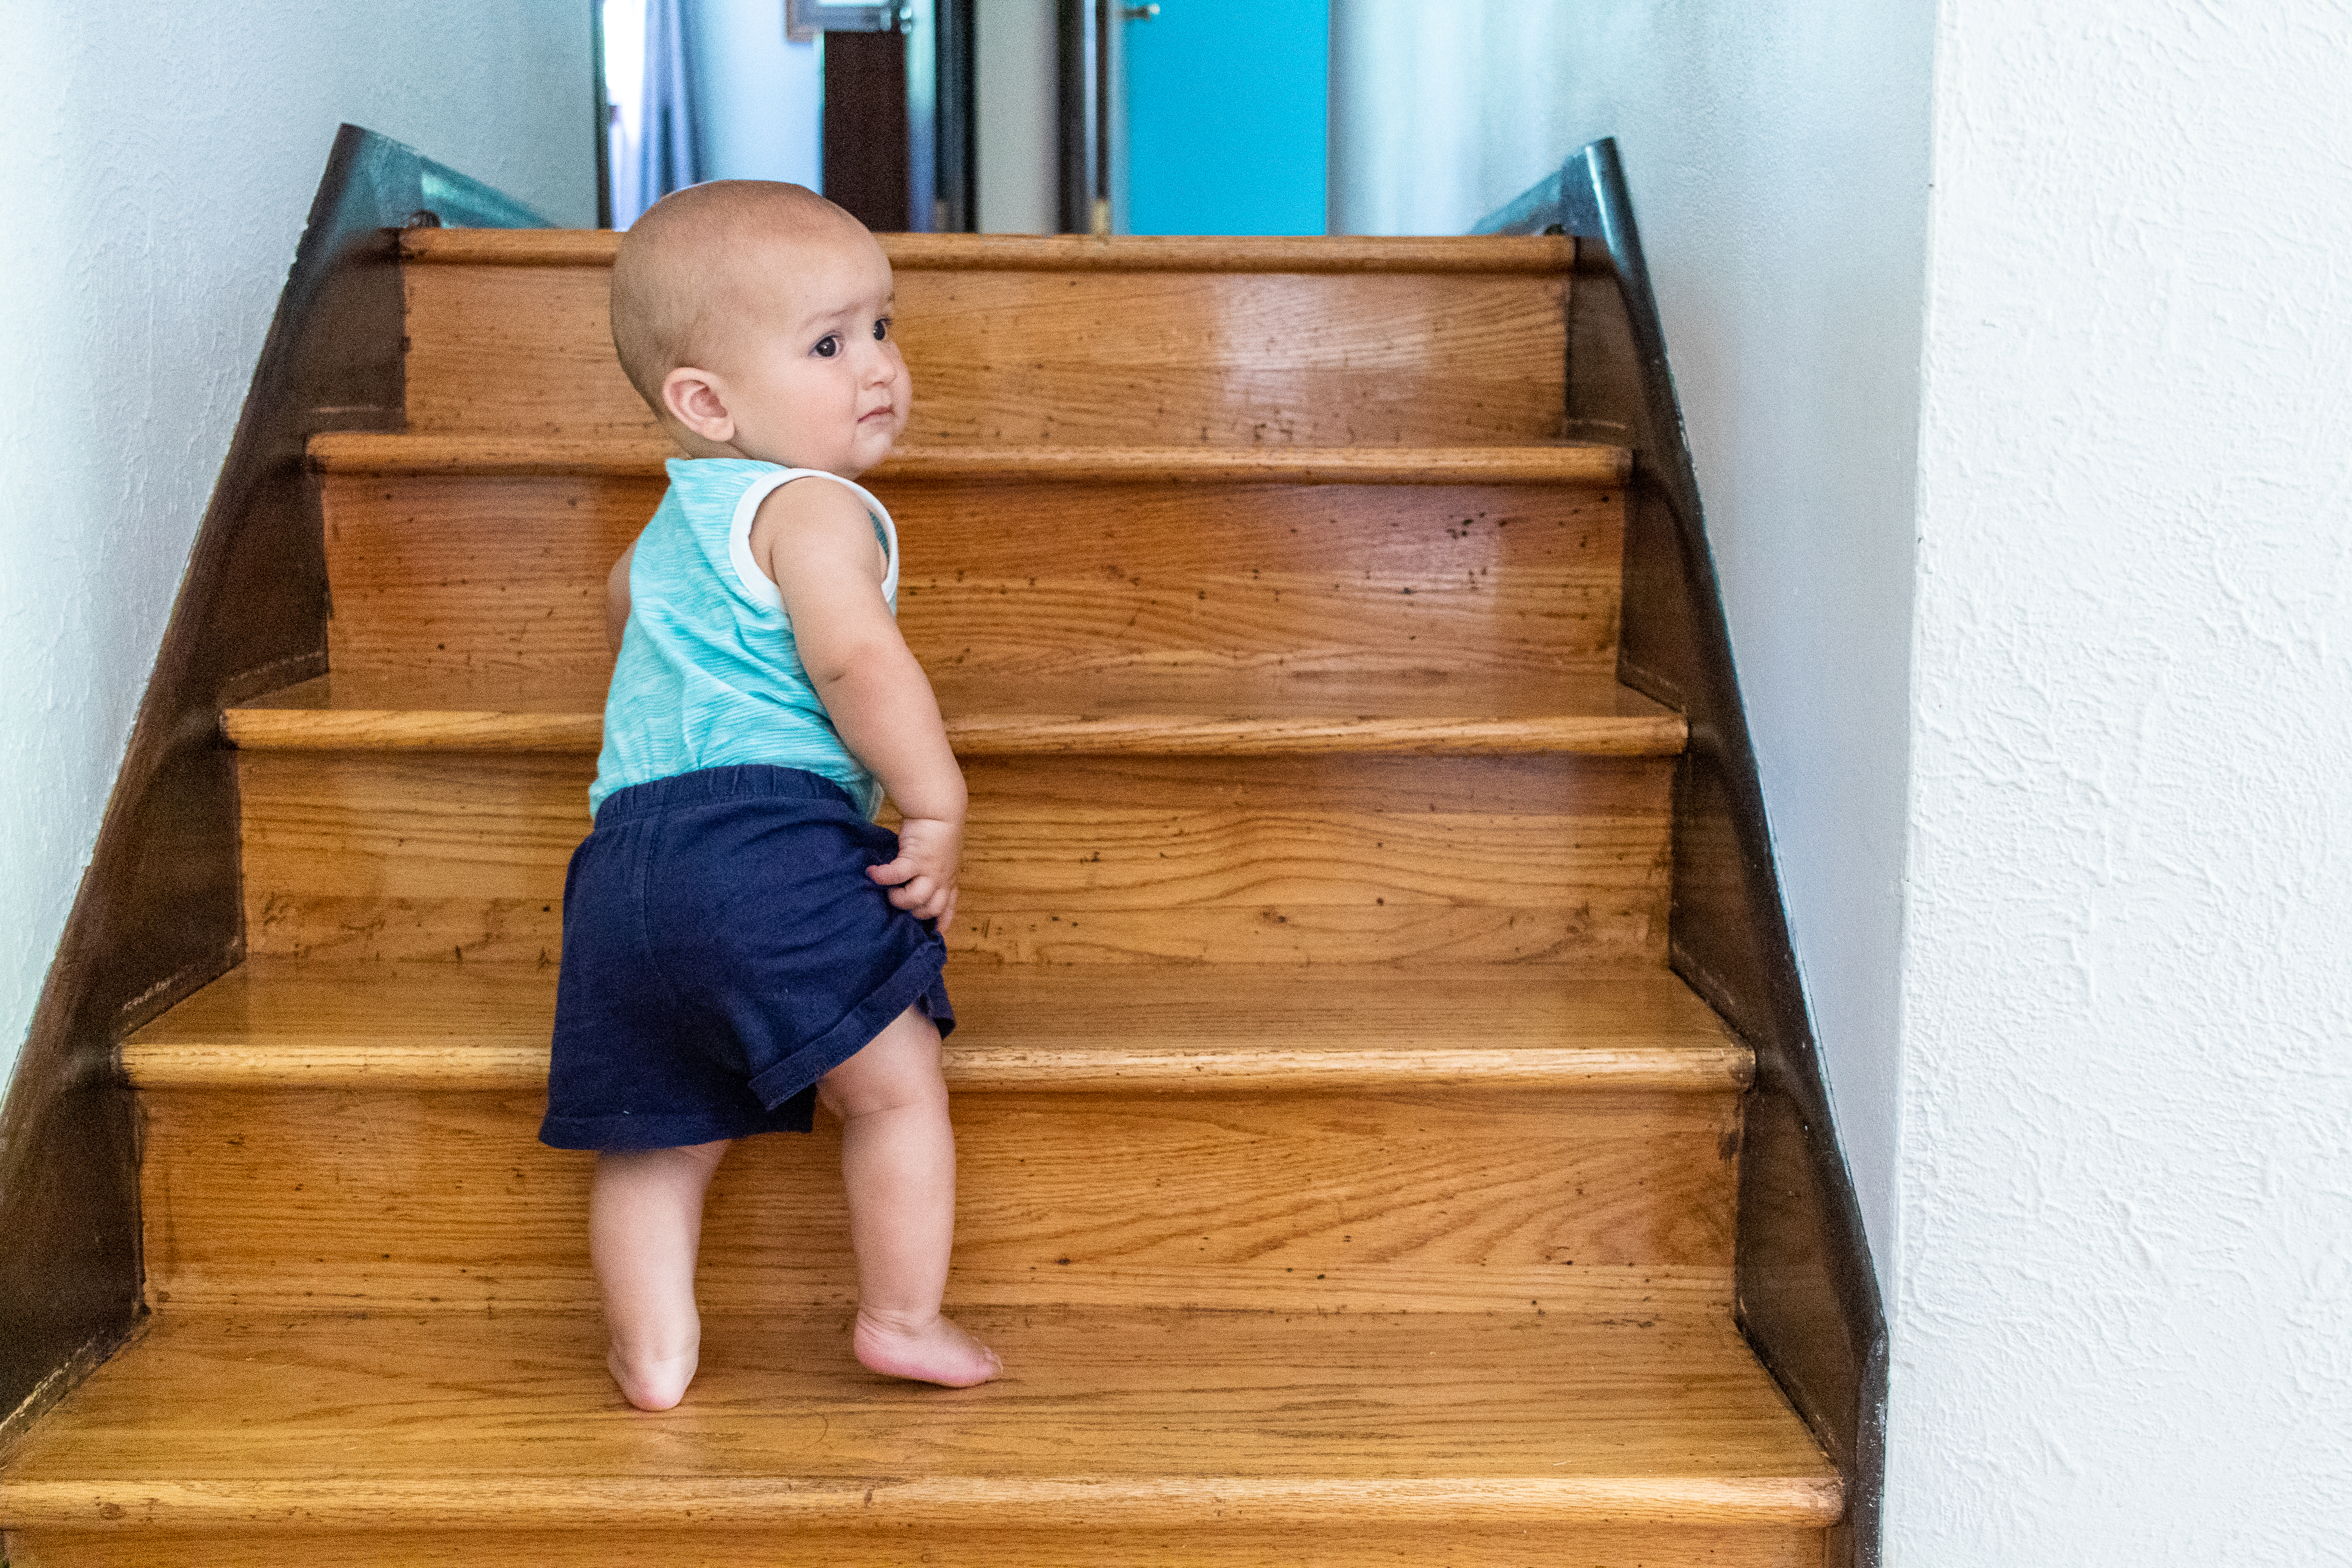 Parenting advice for Montessori babies and stairs. Here's some tips on how we approach stairs and keep everyone safe.